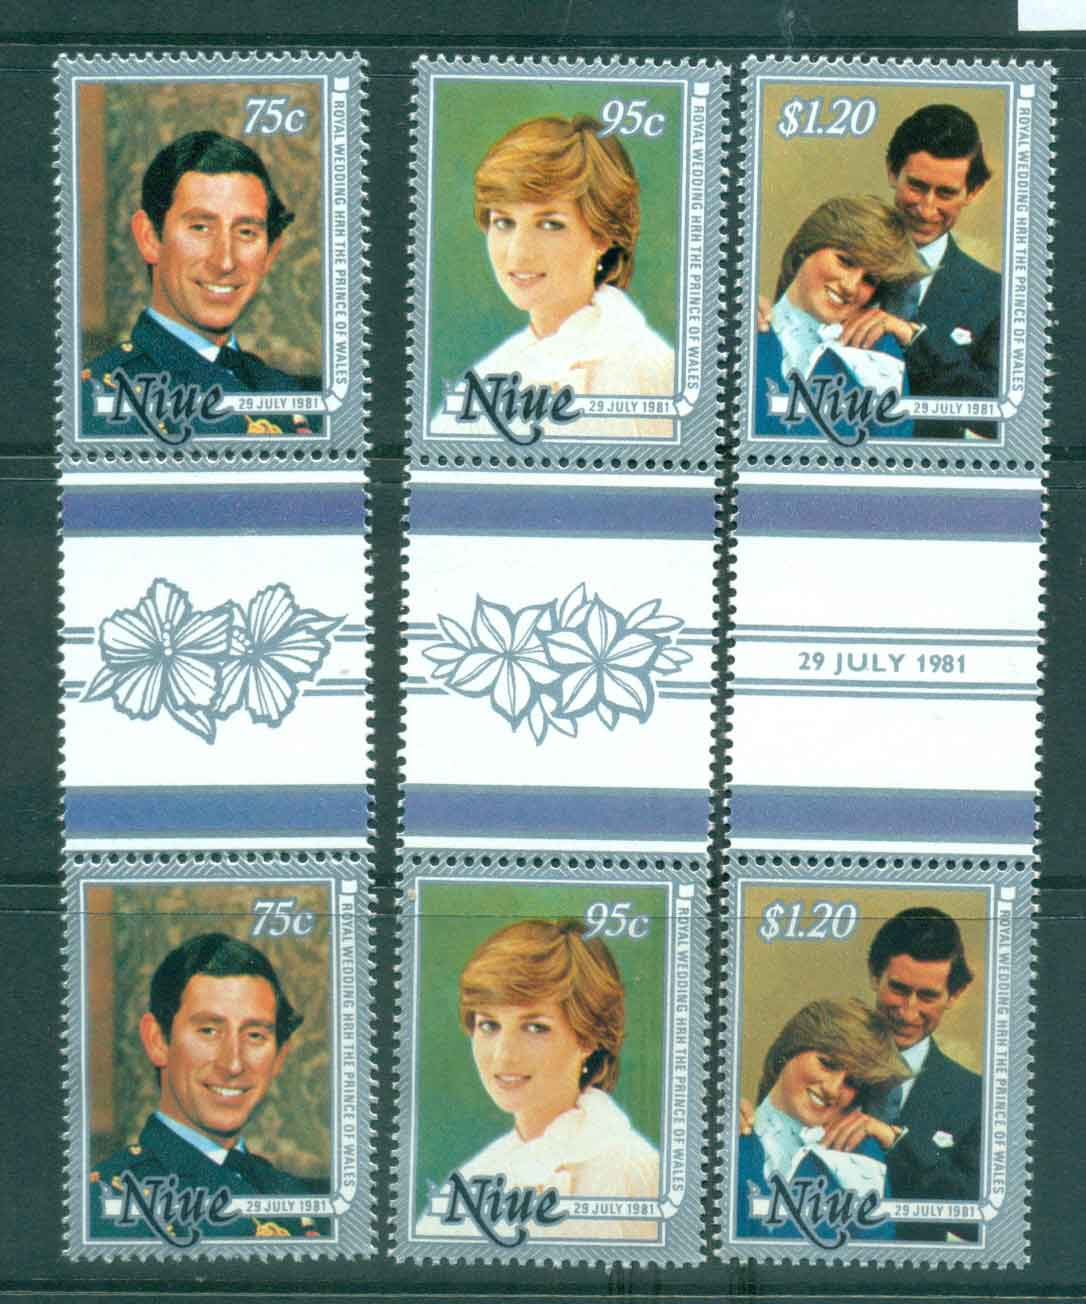 Niue 1981 Charles & Diana Wedding Gutter prs MUH Lot45129